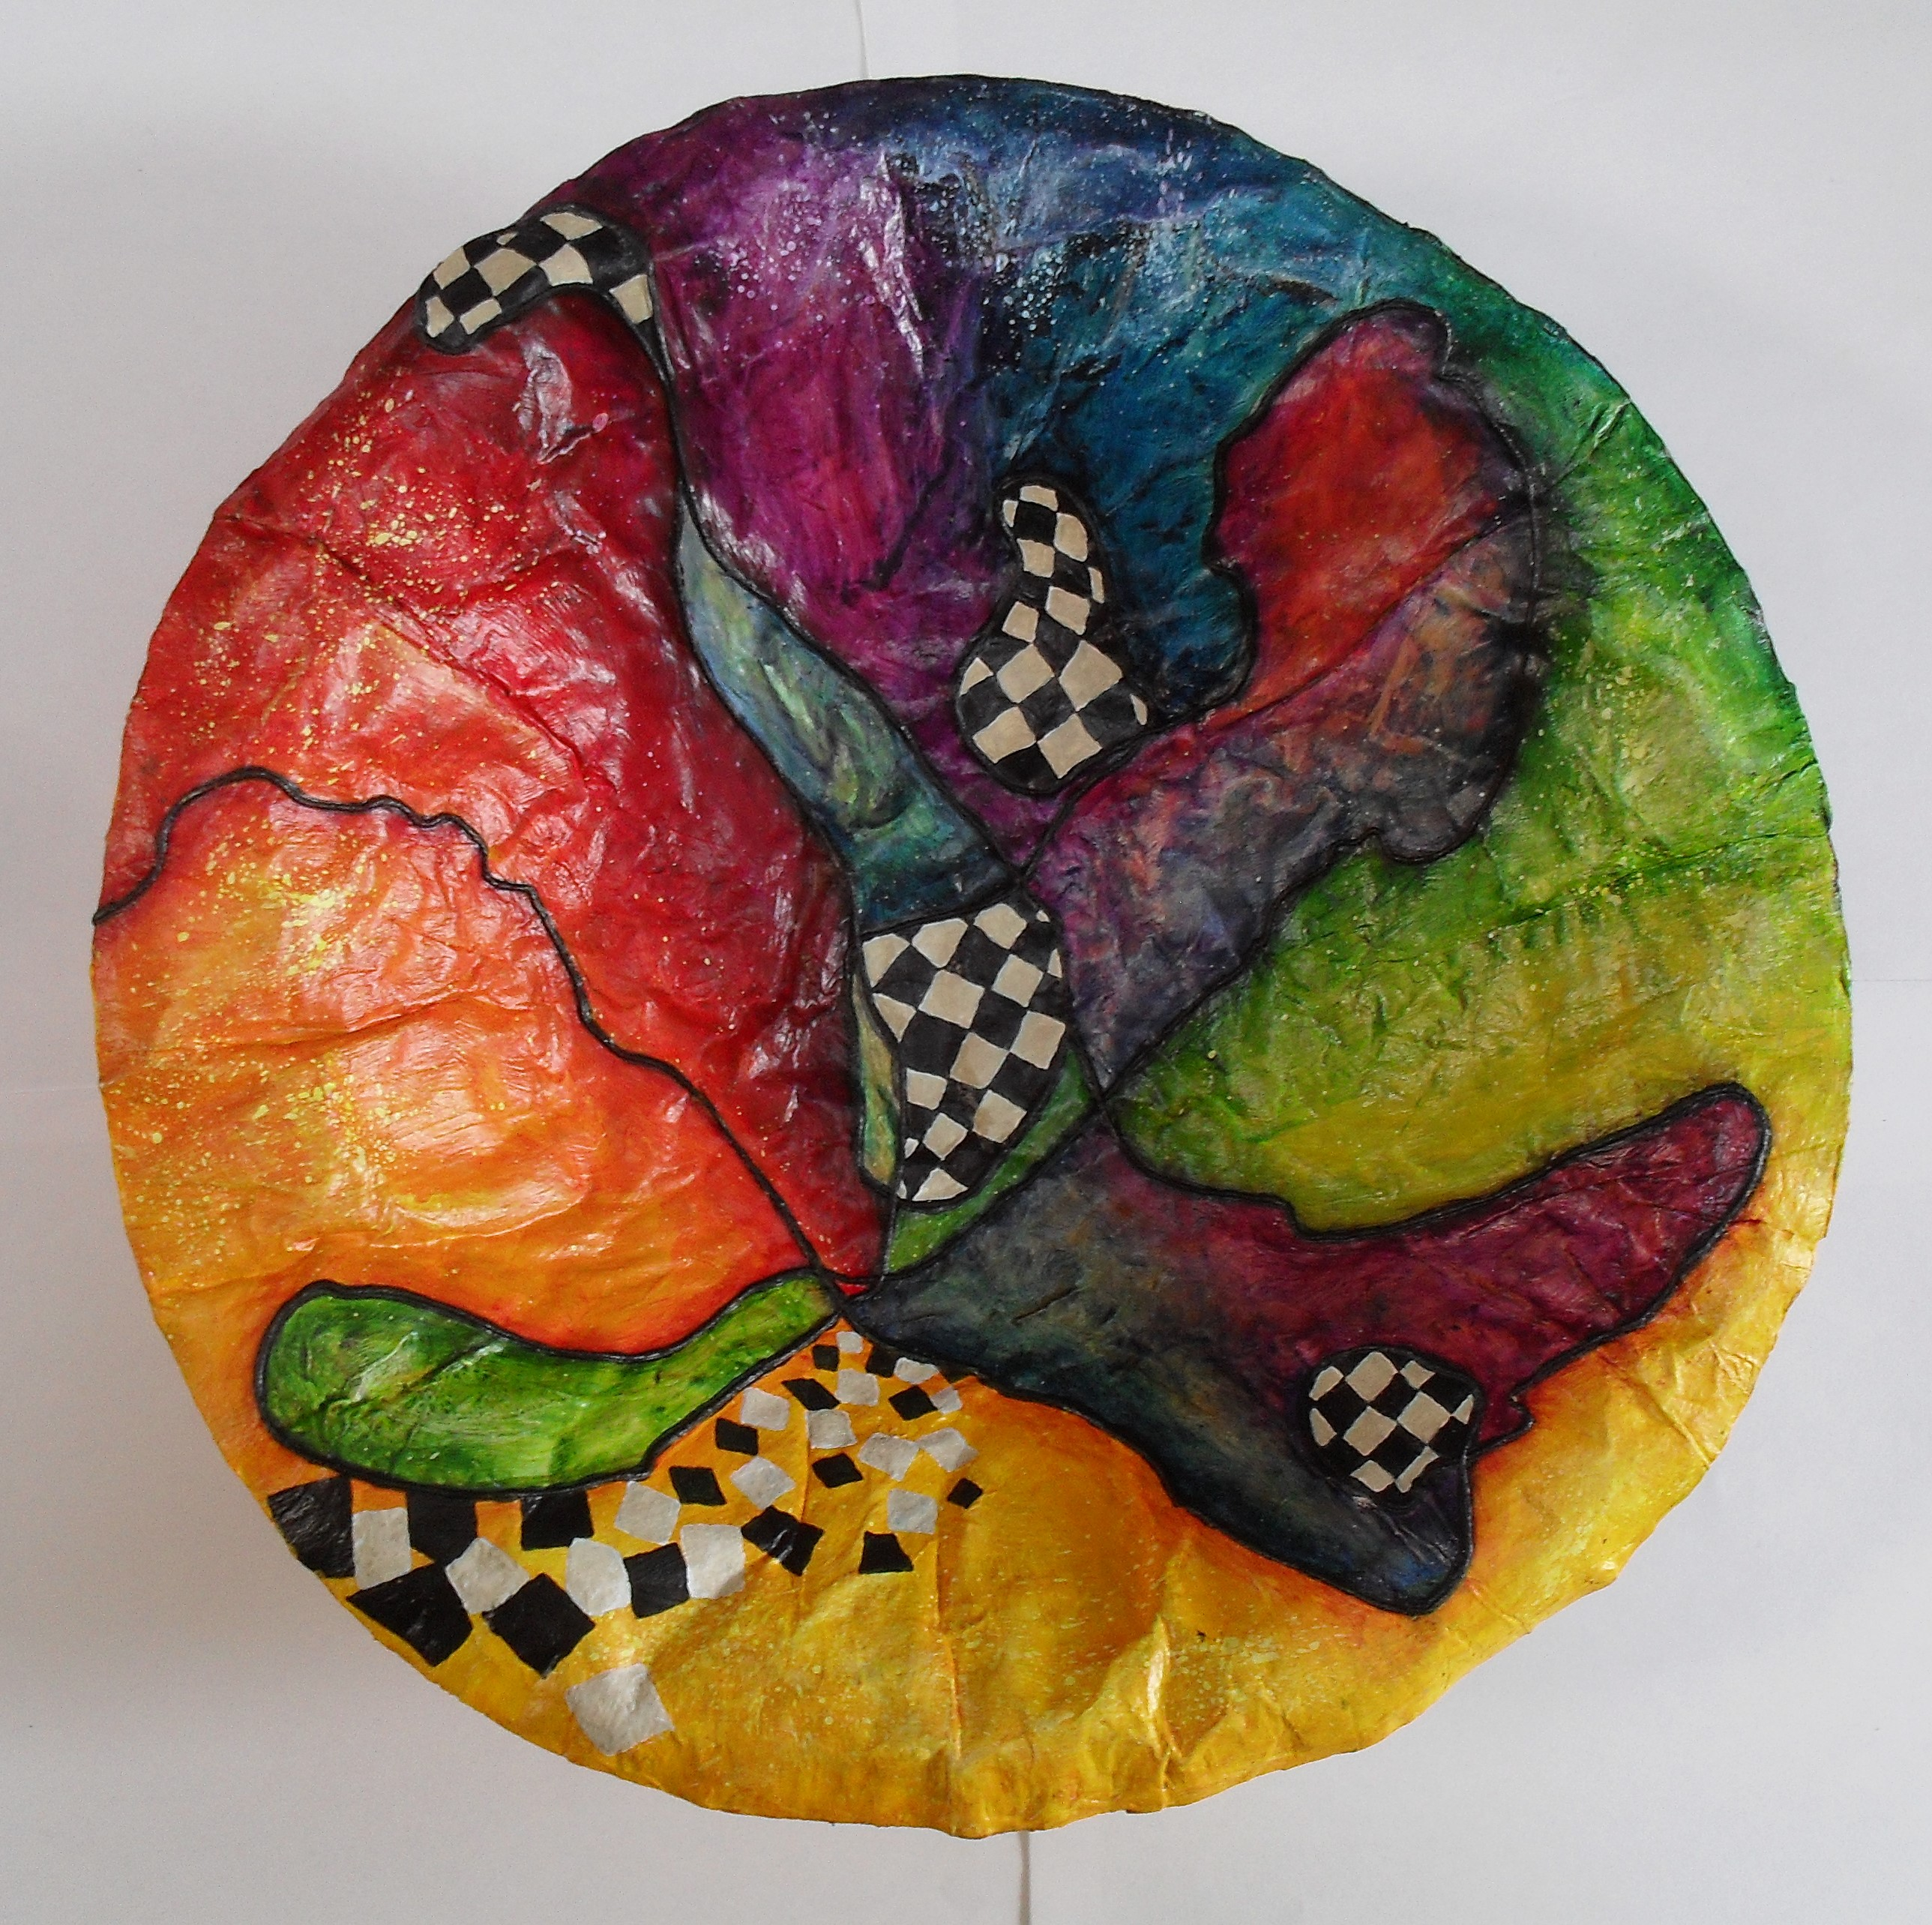 Bowl made of paper mache, painted with acrylics, varnished with yacht varnish art and design by lia van Elffenbrinck